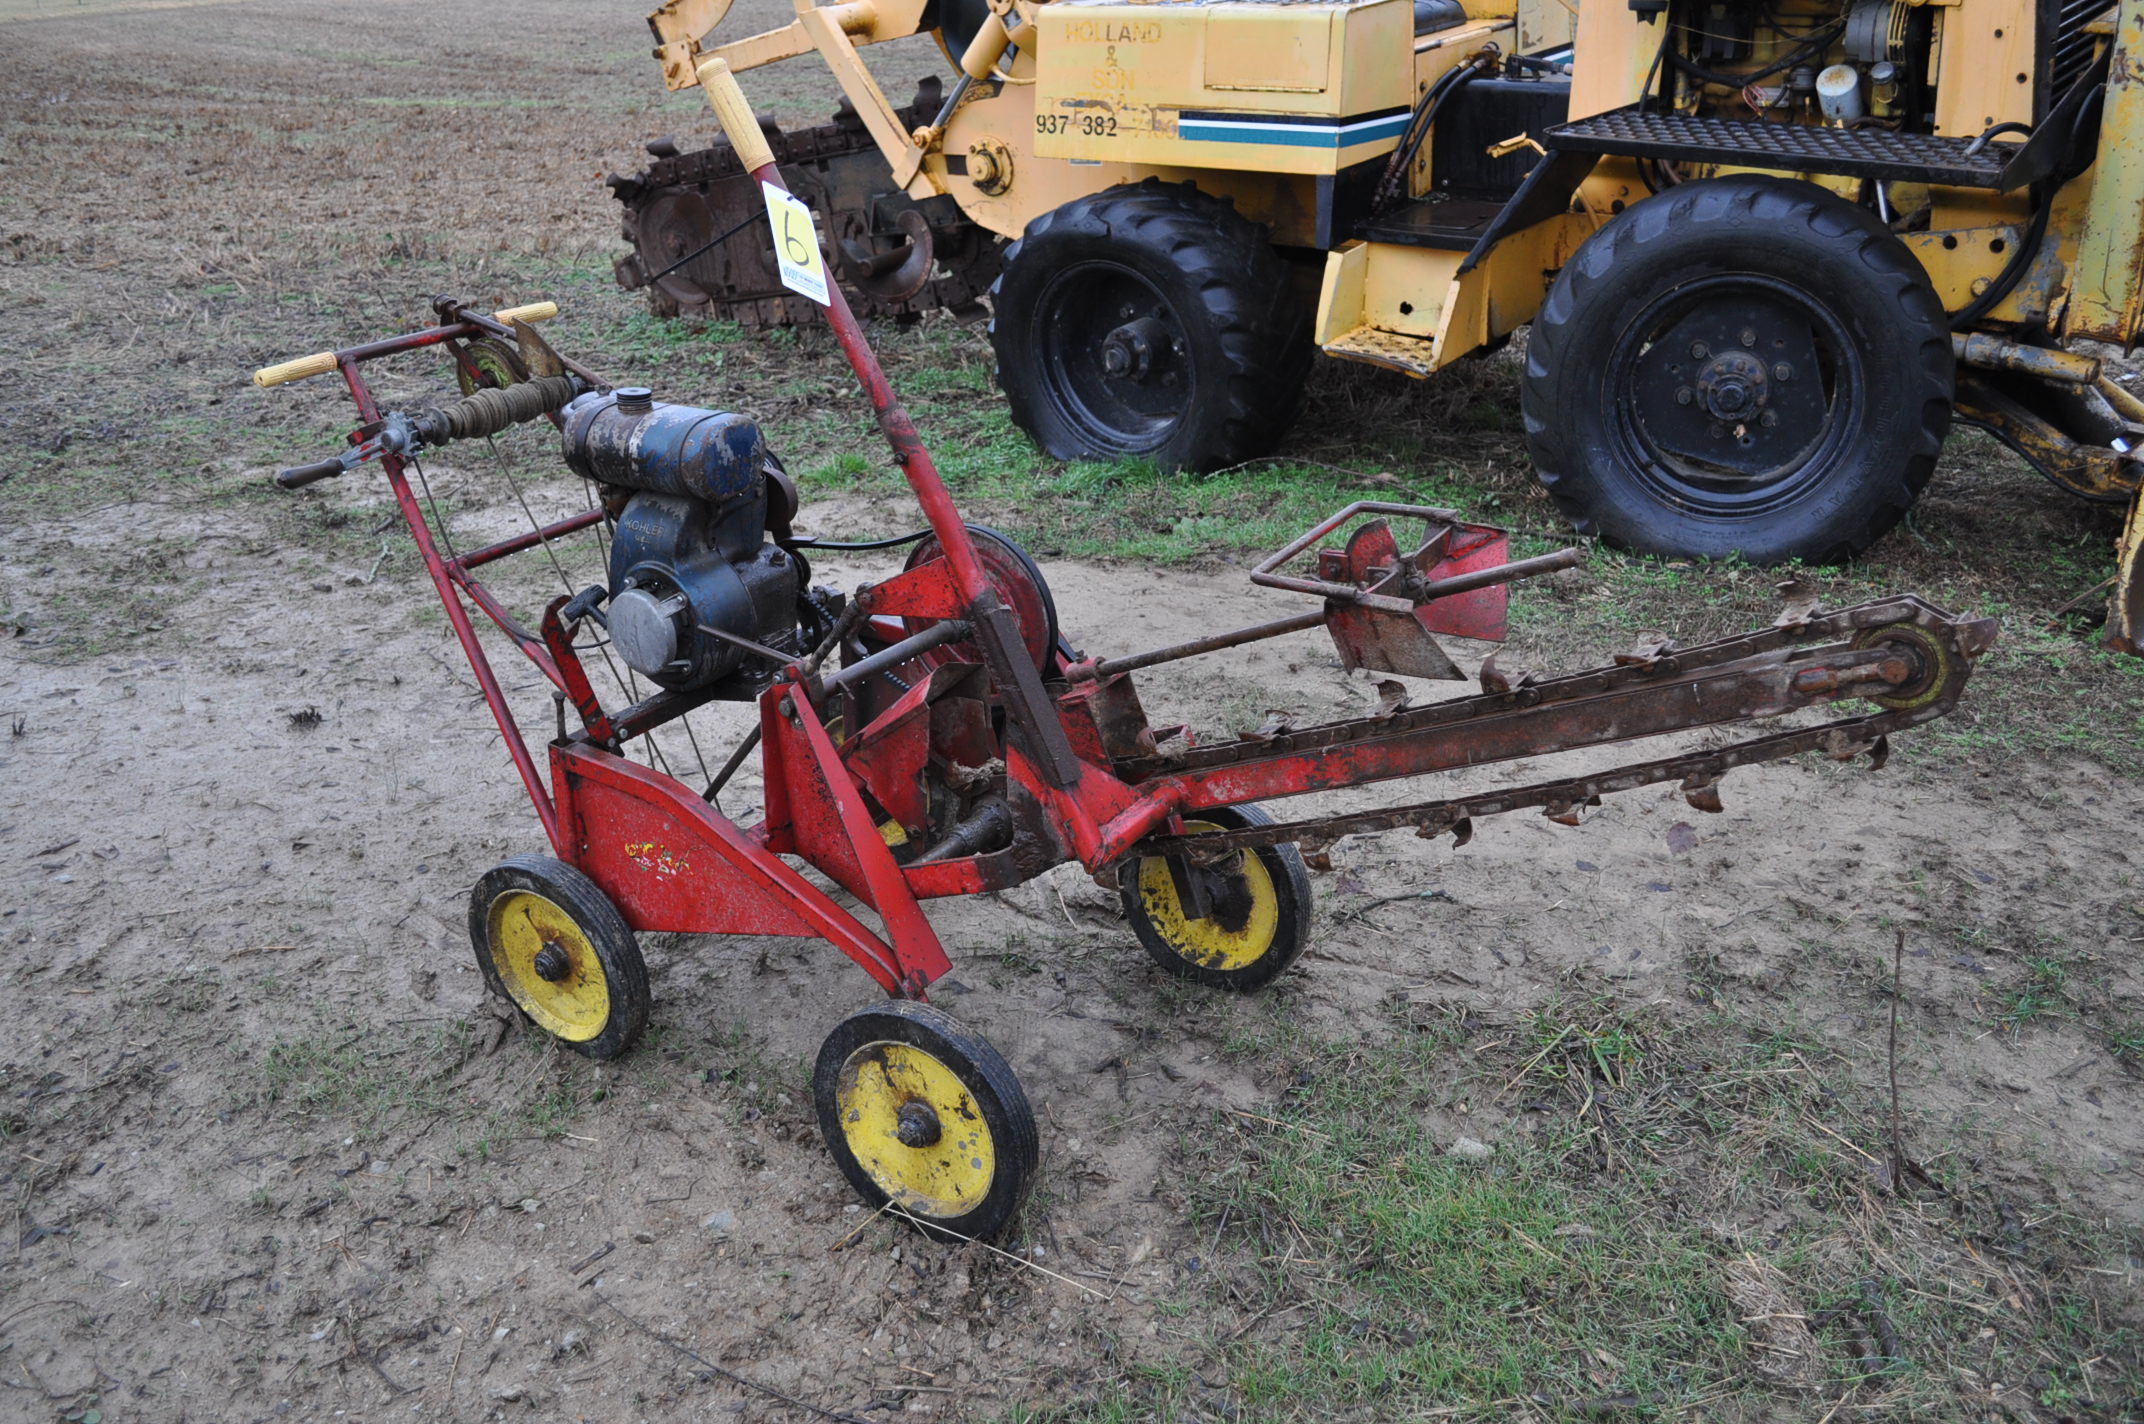 Gas powered walk-behind trencher, Kohler gas - Image 2 of 6